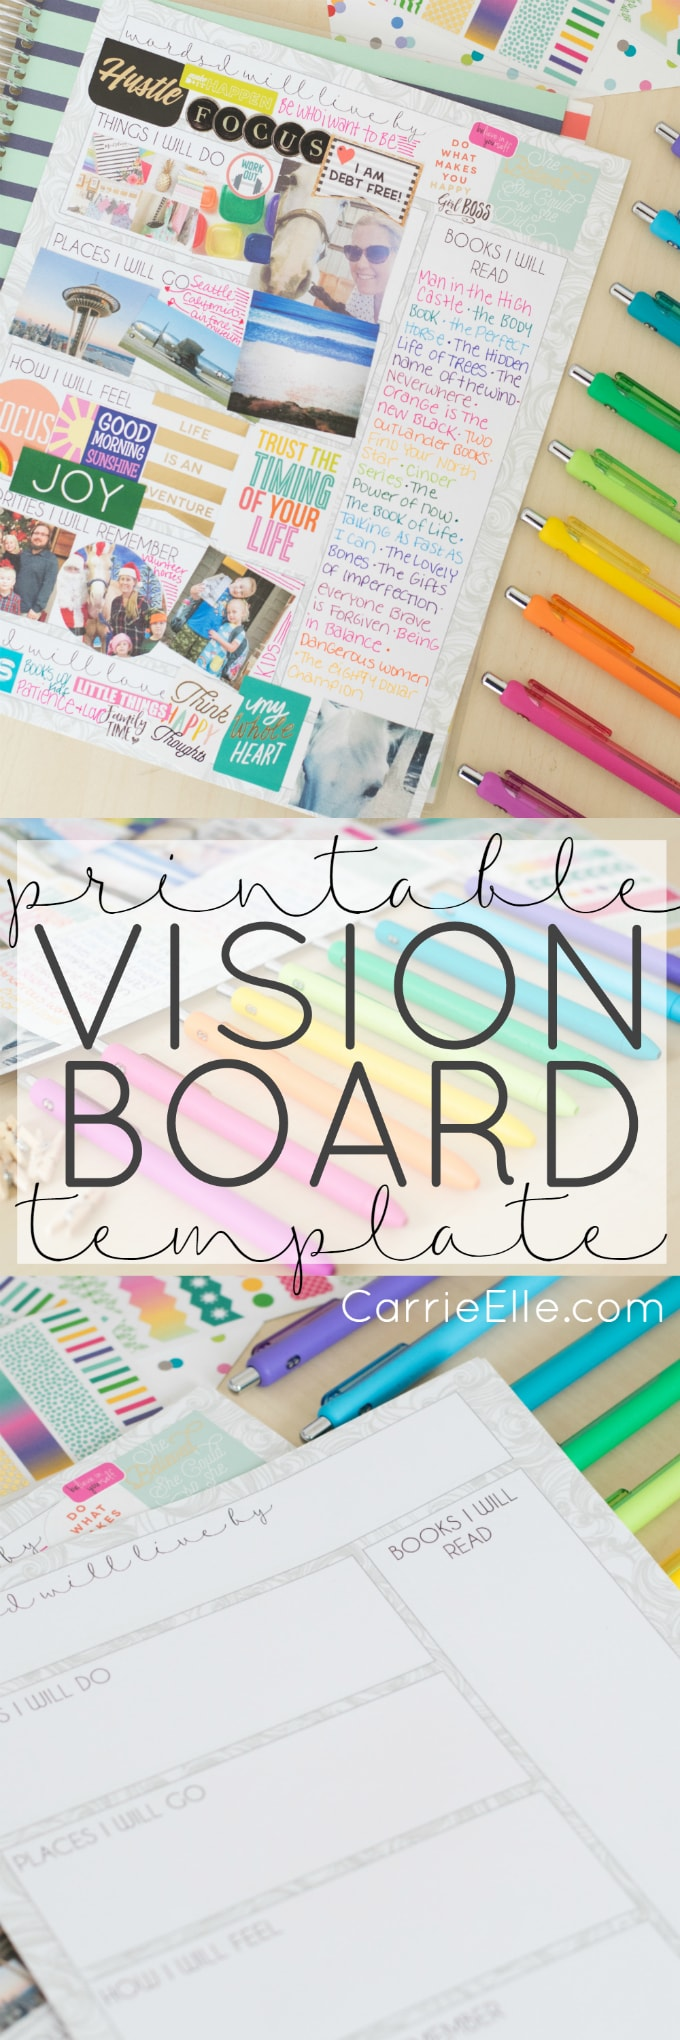 vision board collage for pinterest